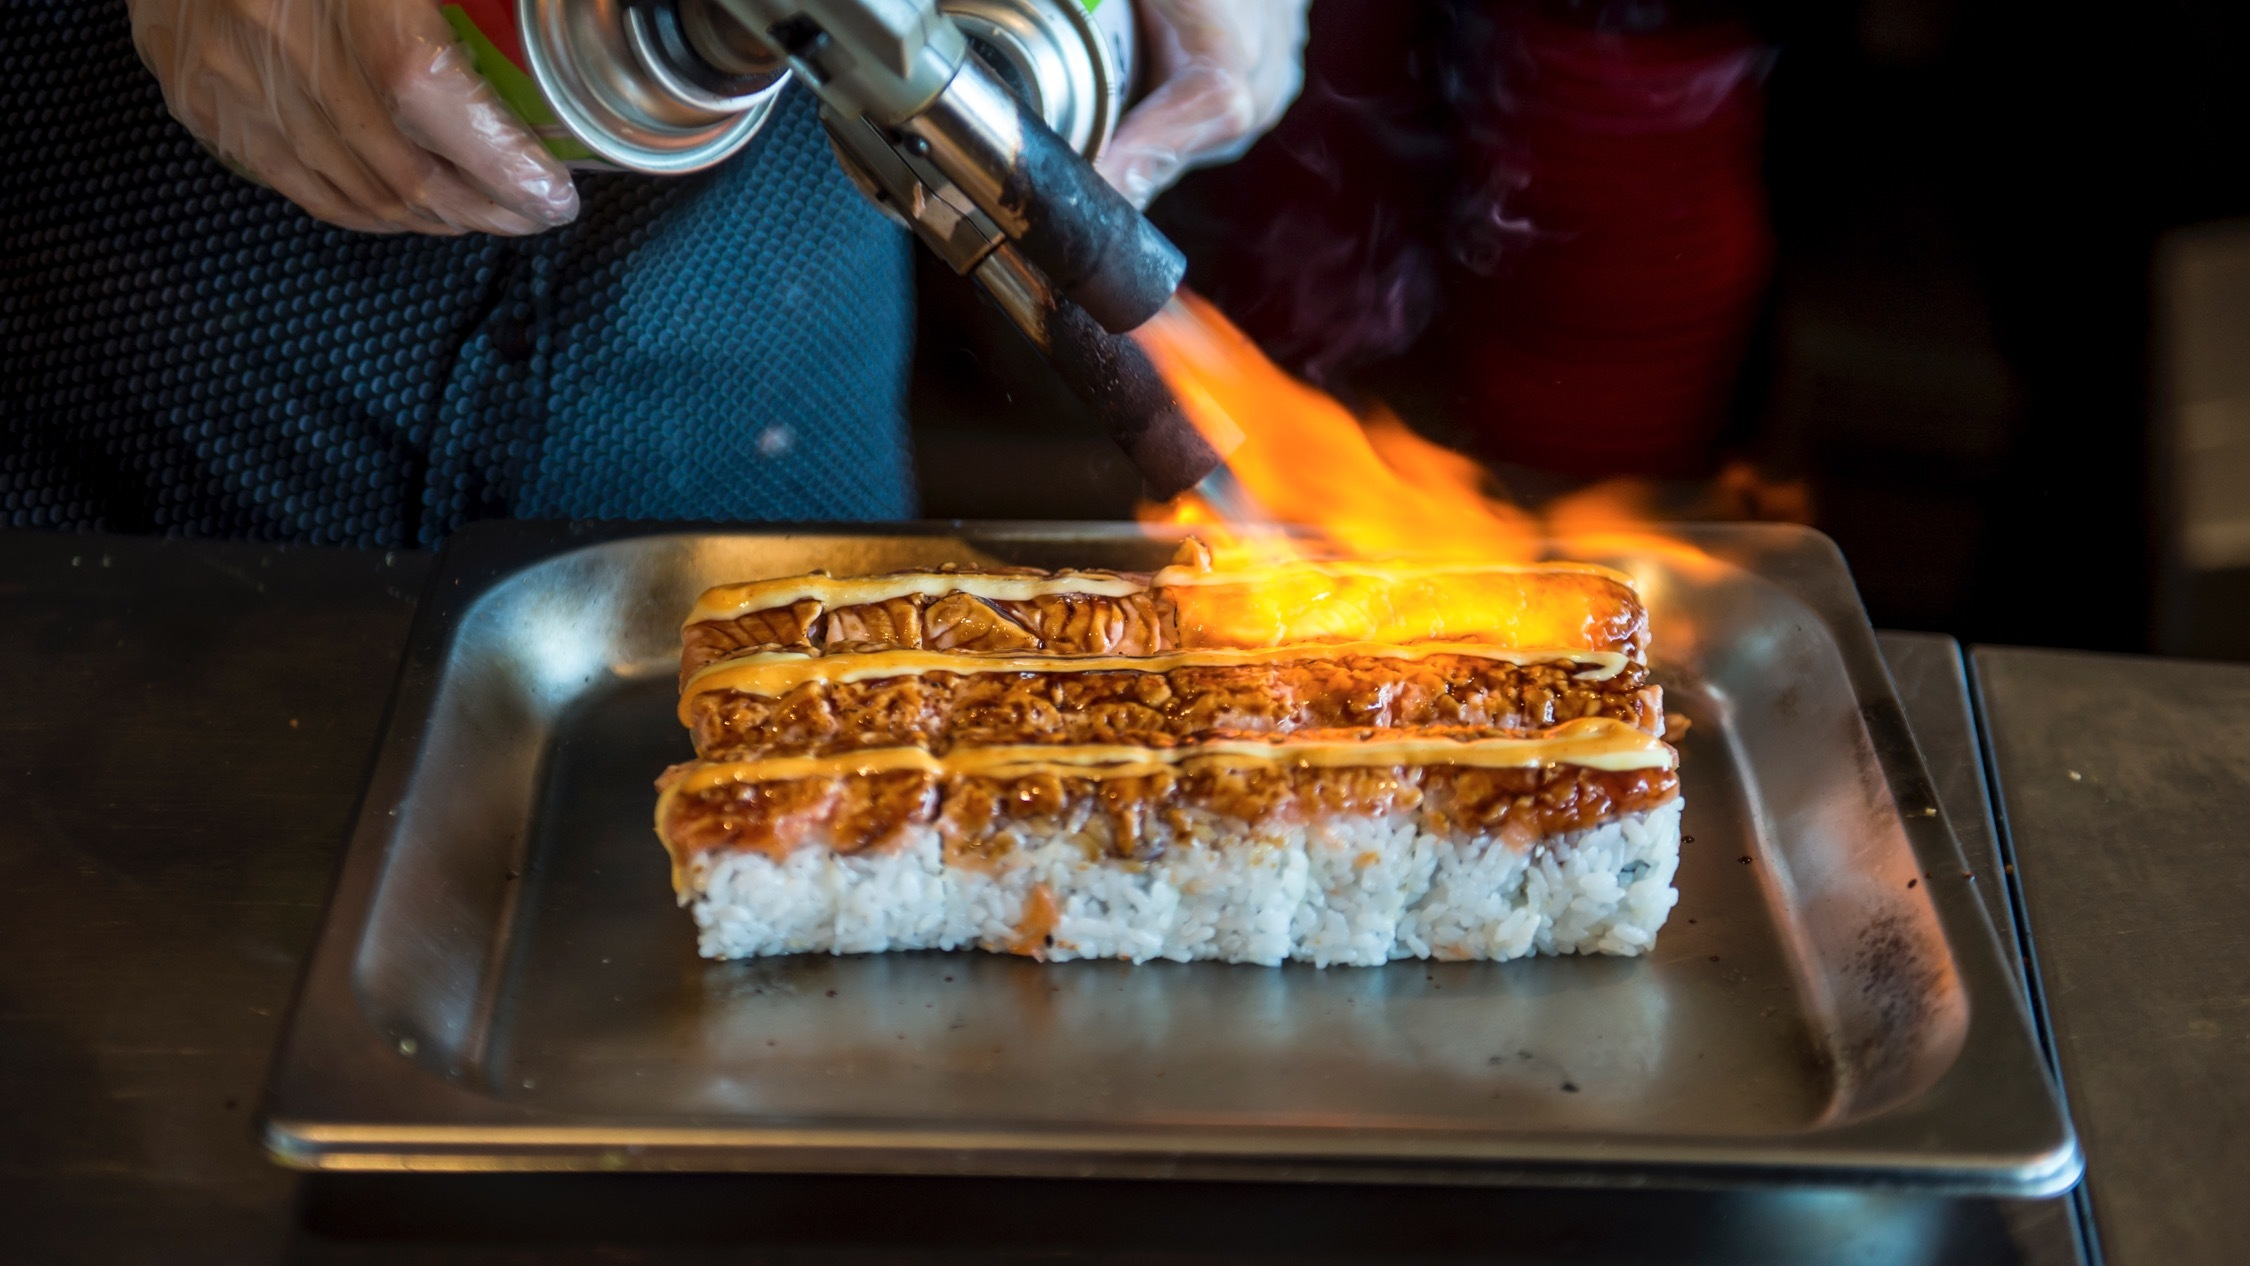 Flame sushi at GouSushi Sydney